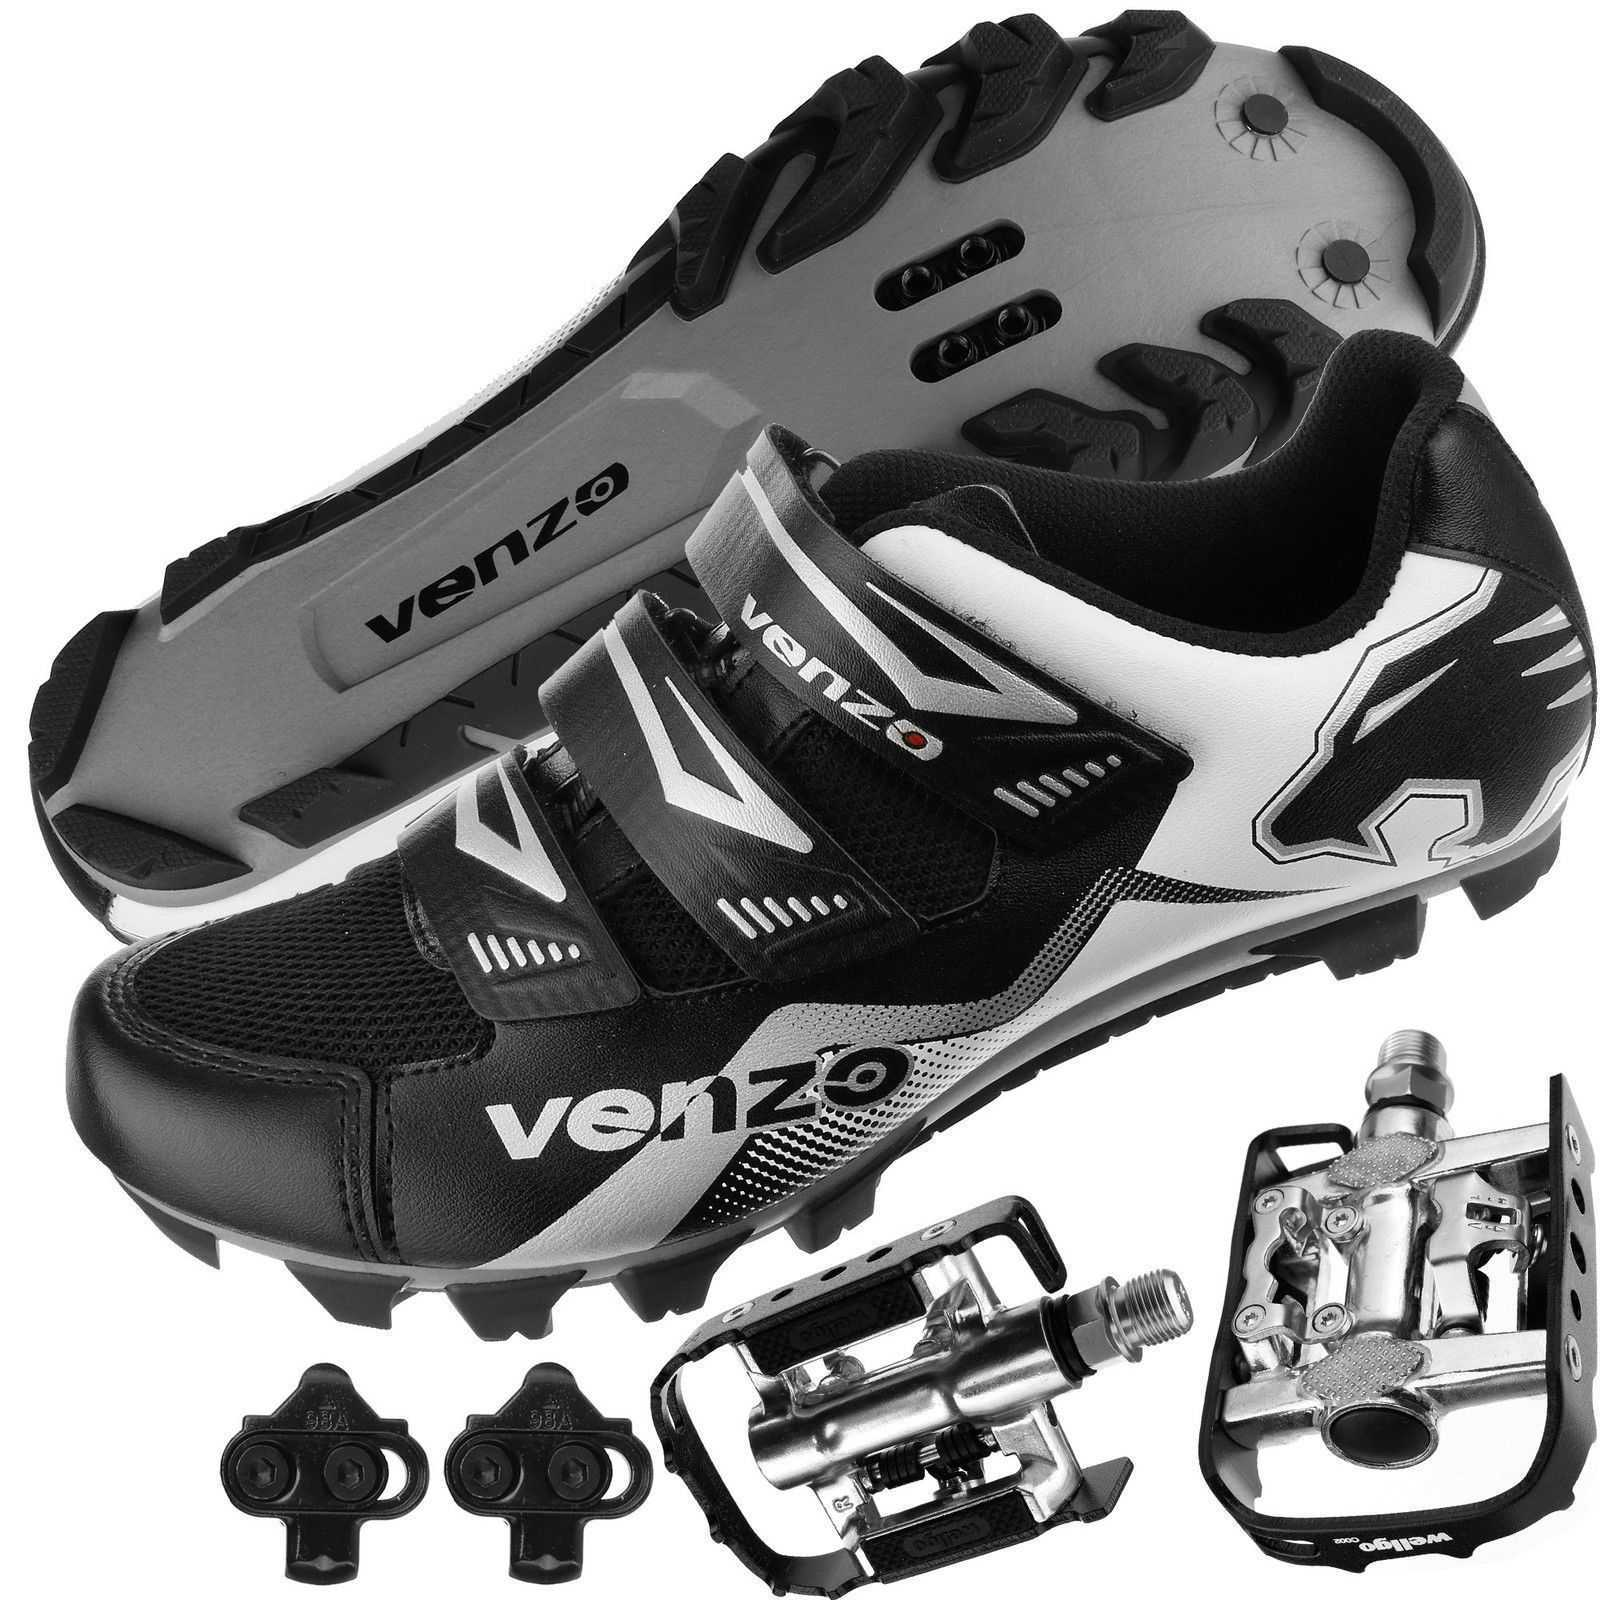 with MTB Type Clipless Cleats 46 Multi-Use Pedals Venzo Mountain Bike Bicycle Cycling Compatible with Shimano SPD Men or Women Shoes